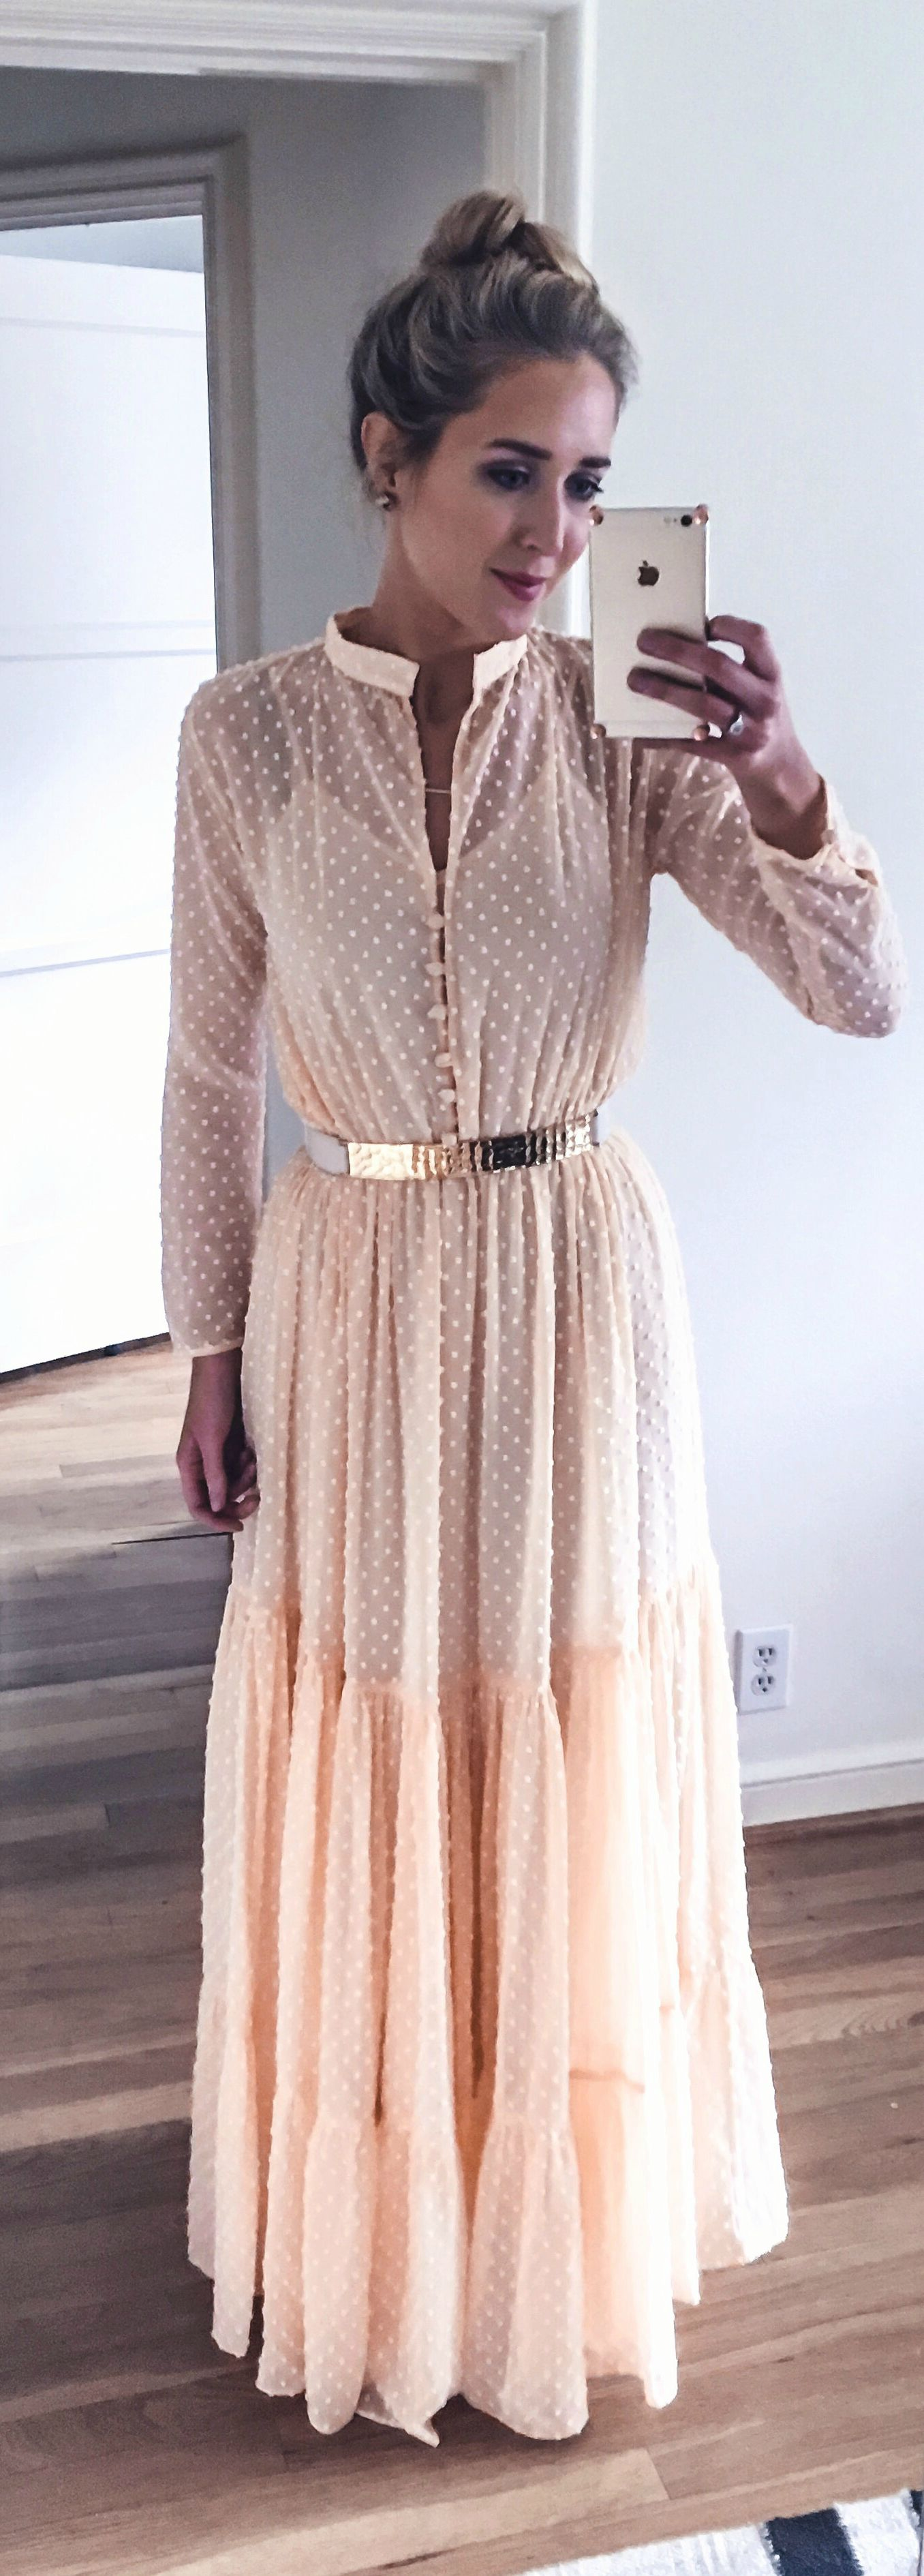 pale coral peach long sleeve maxi dress with subtle dots and